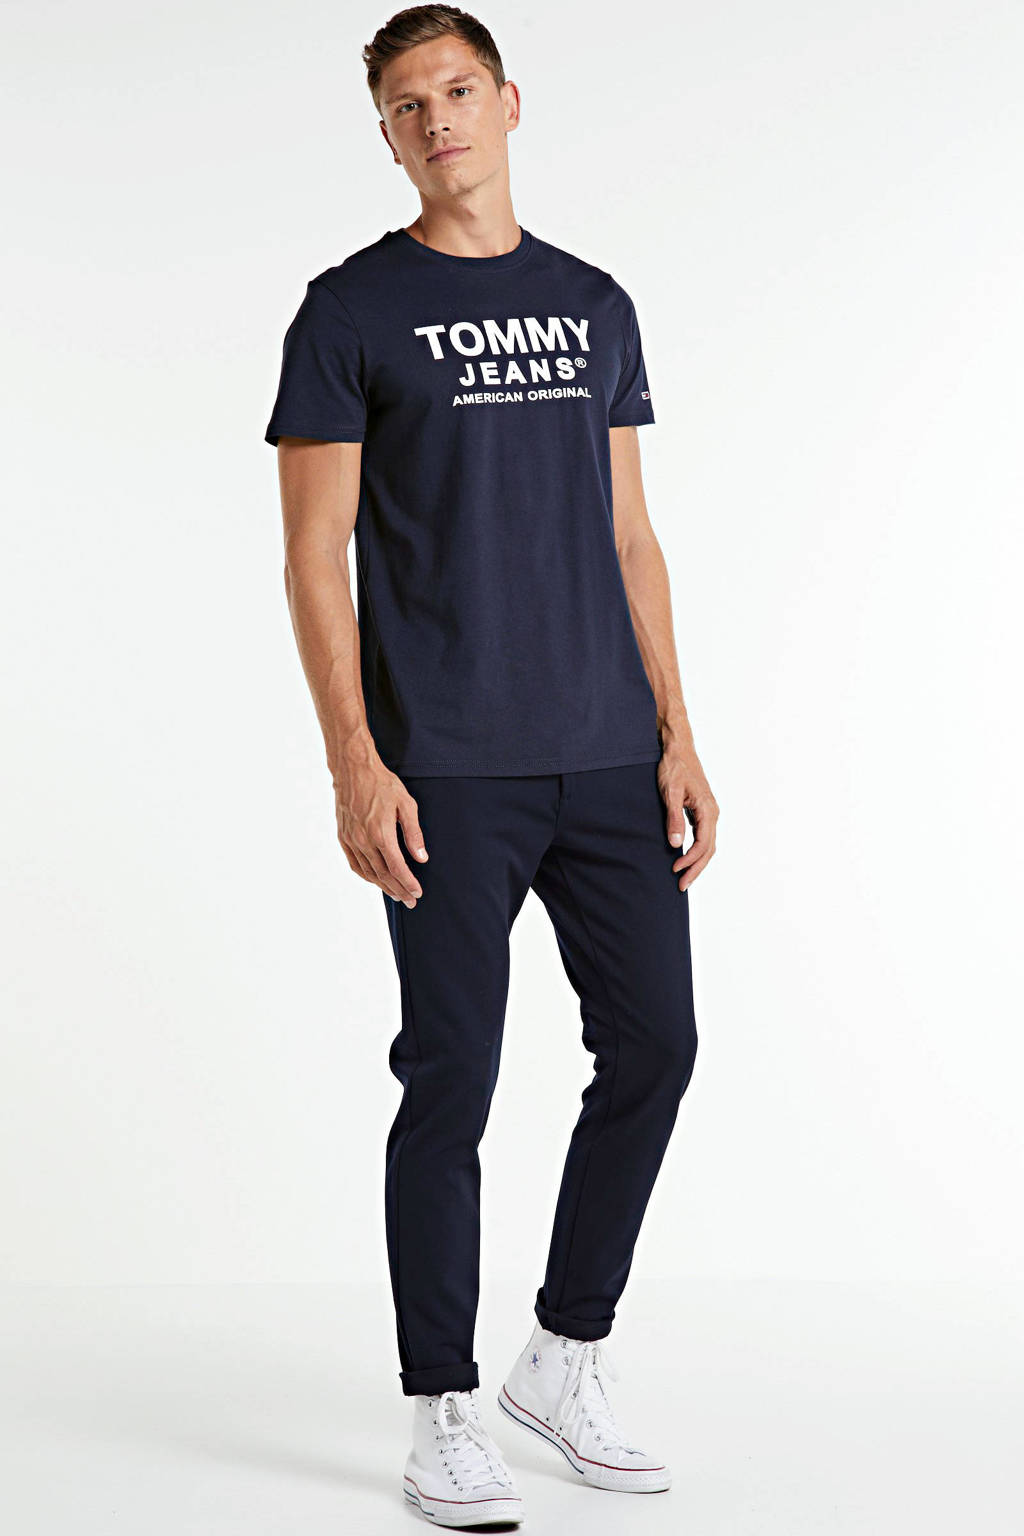 Tommy Jeans T-shirt met logo donkerblauw, Donkerblauw